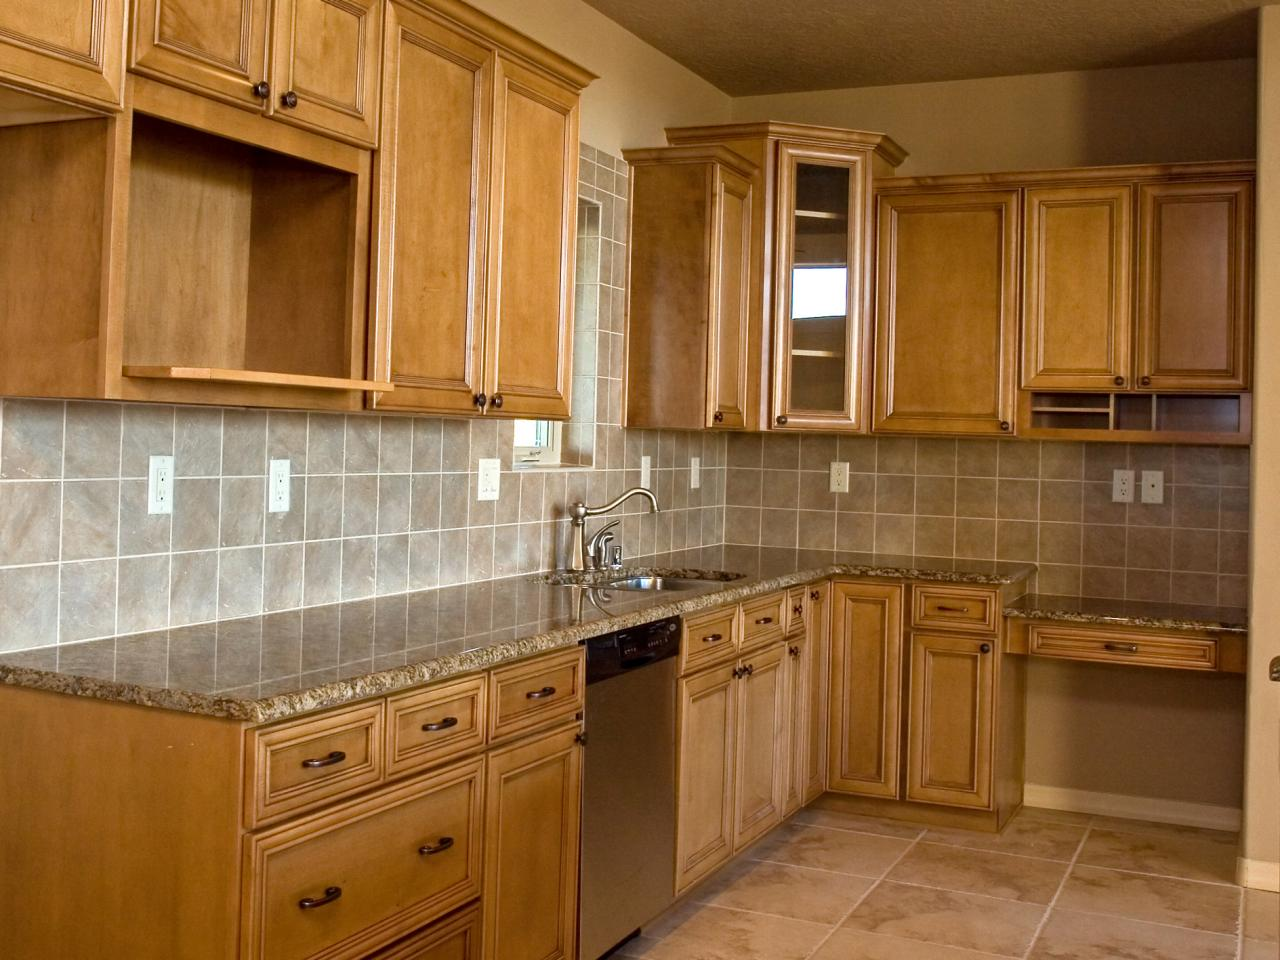 Kitchen cabinet colors and finishes pictures options for Finished kitchen cabinets